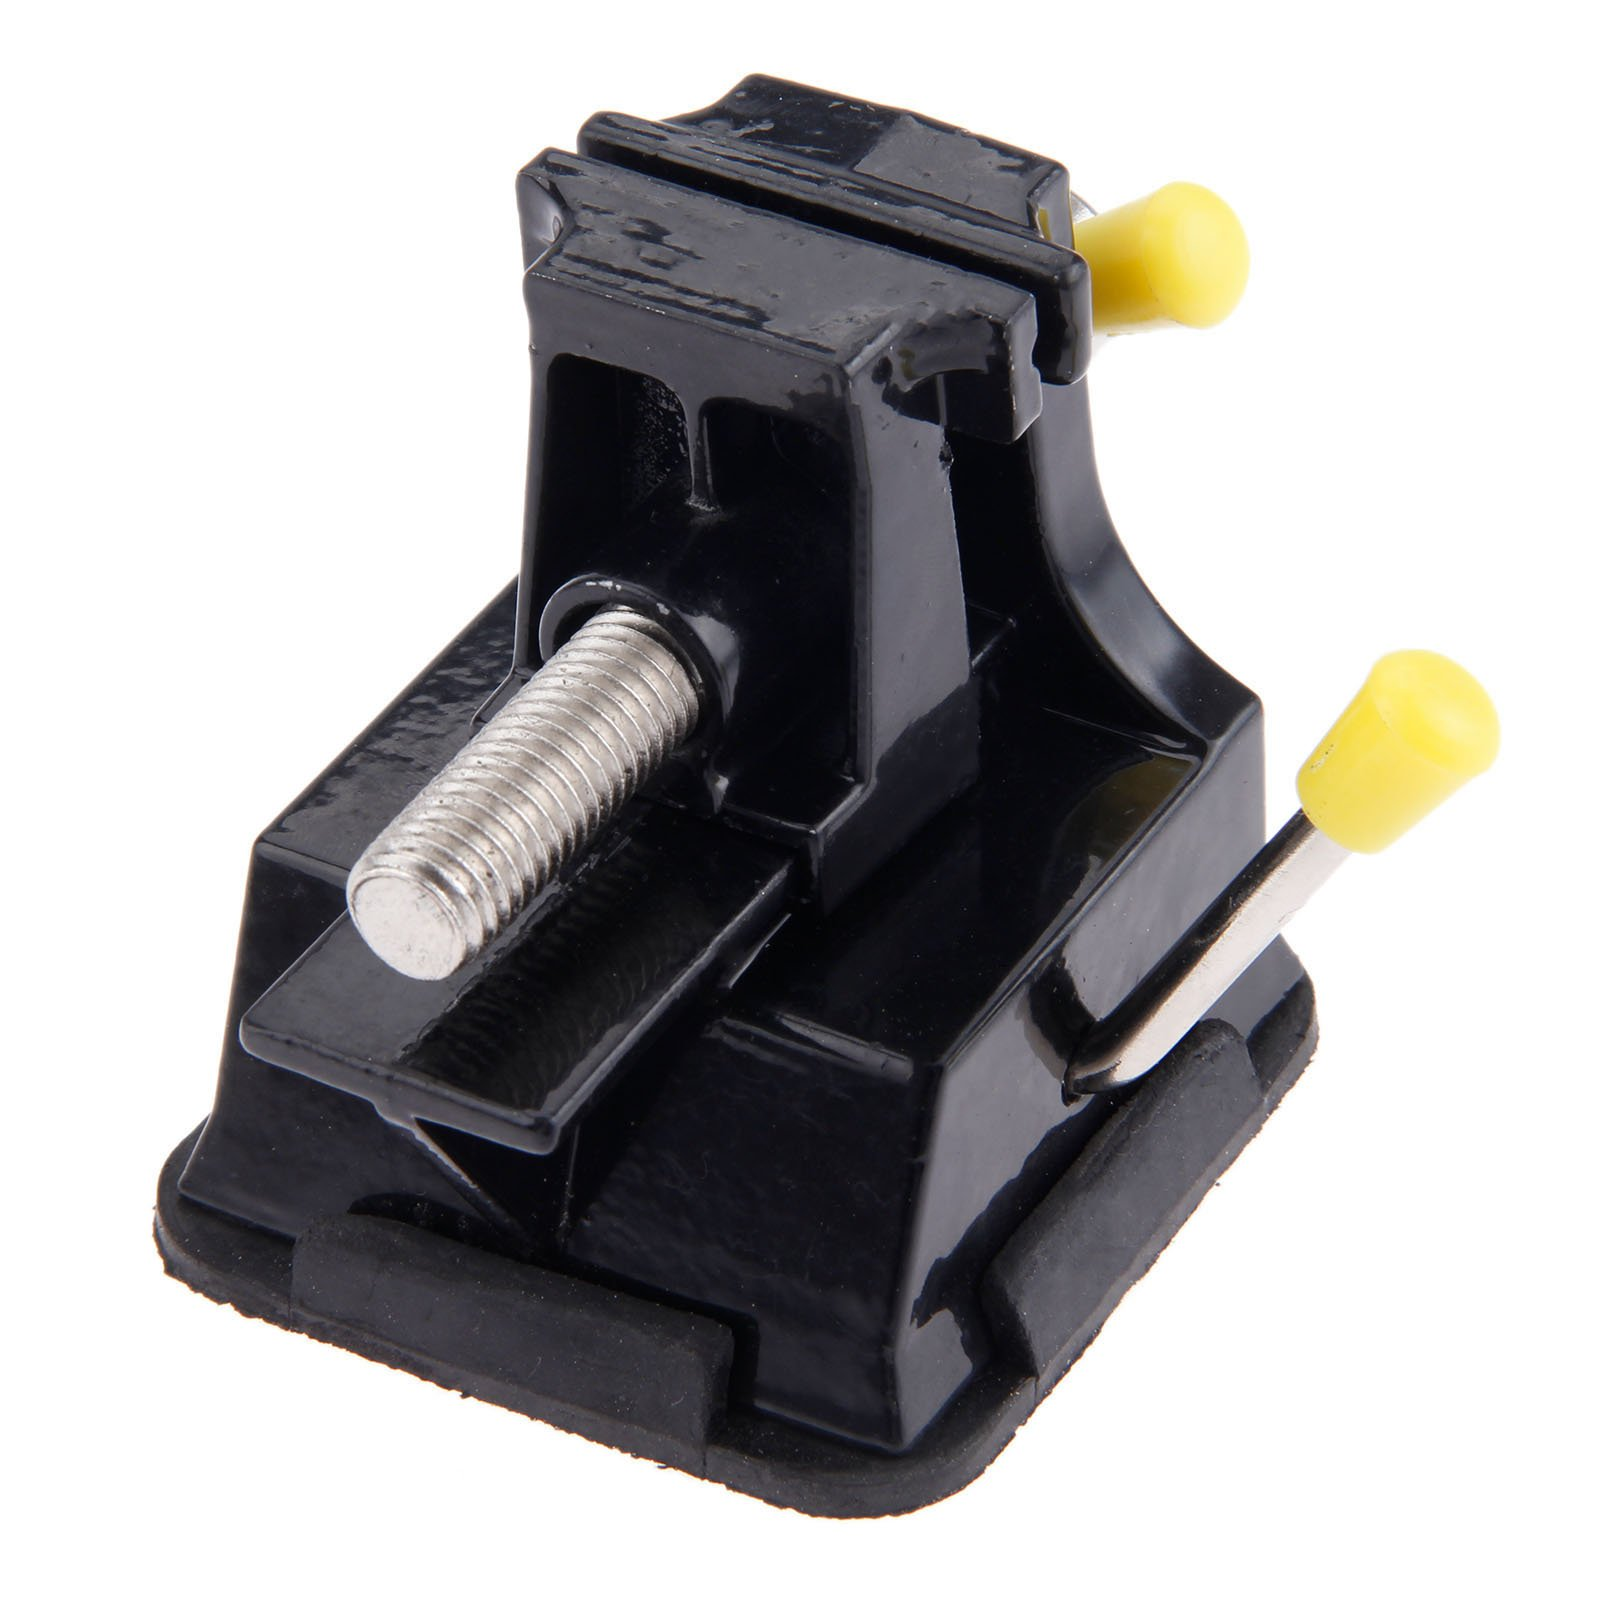 1pcs Metal Table Bench Vise Press Clamp Professional Table Vice for Repair Welding and Disassembly Carving Fixture 38mm